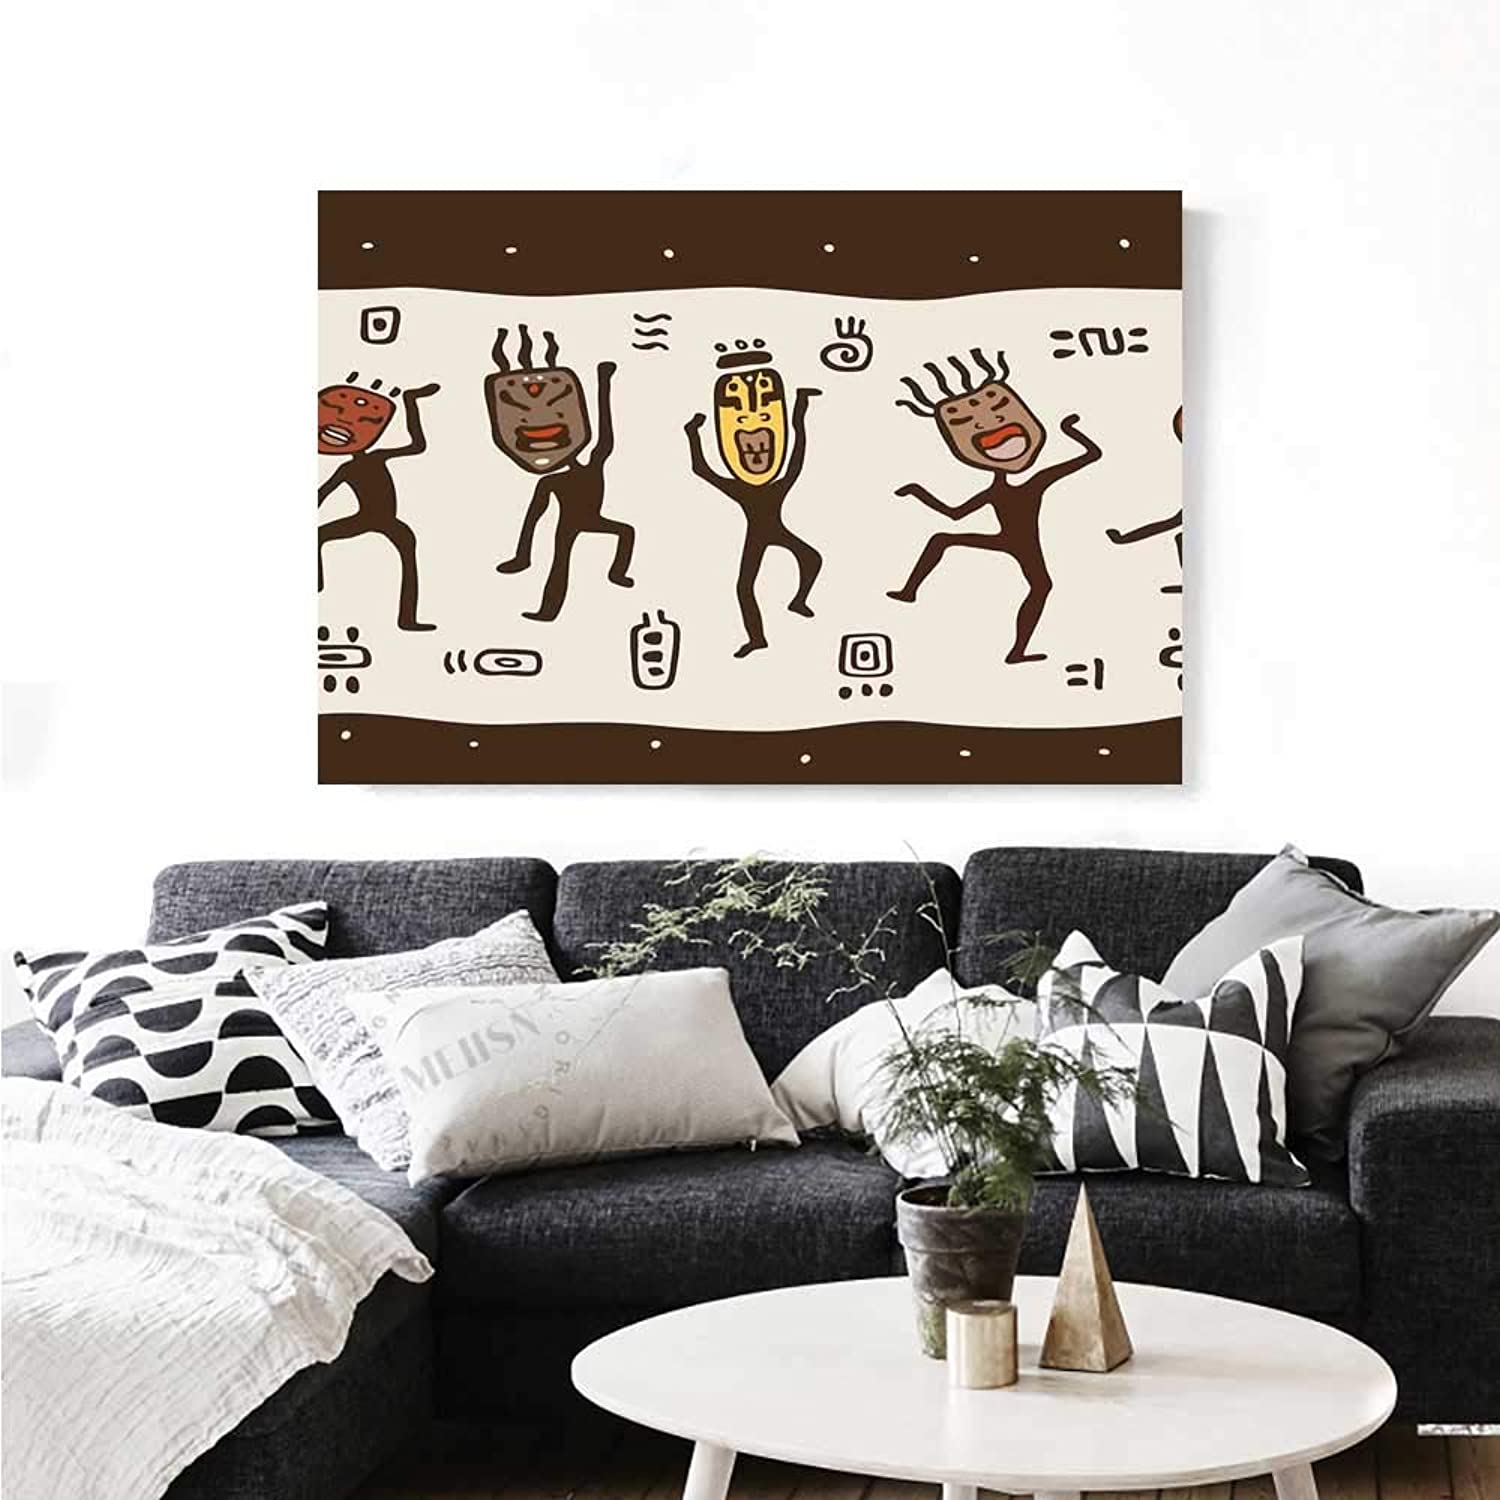 Warm Family Primitive Canvas Wall Art for Bedroom Home Decorations Cartoon Dancing Natives Wearing African Masks Prehistoric Rituals Wall Stickers 36 x32  Army Green Beige Yellow